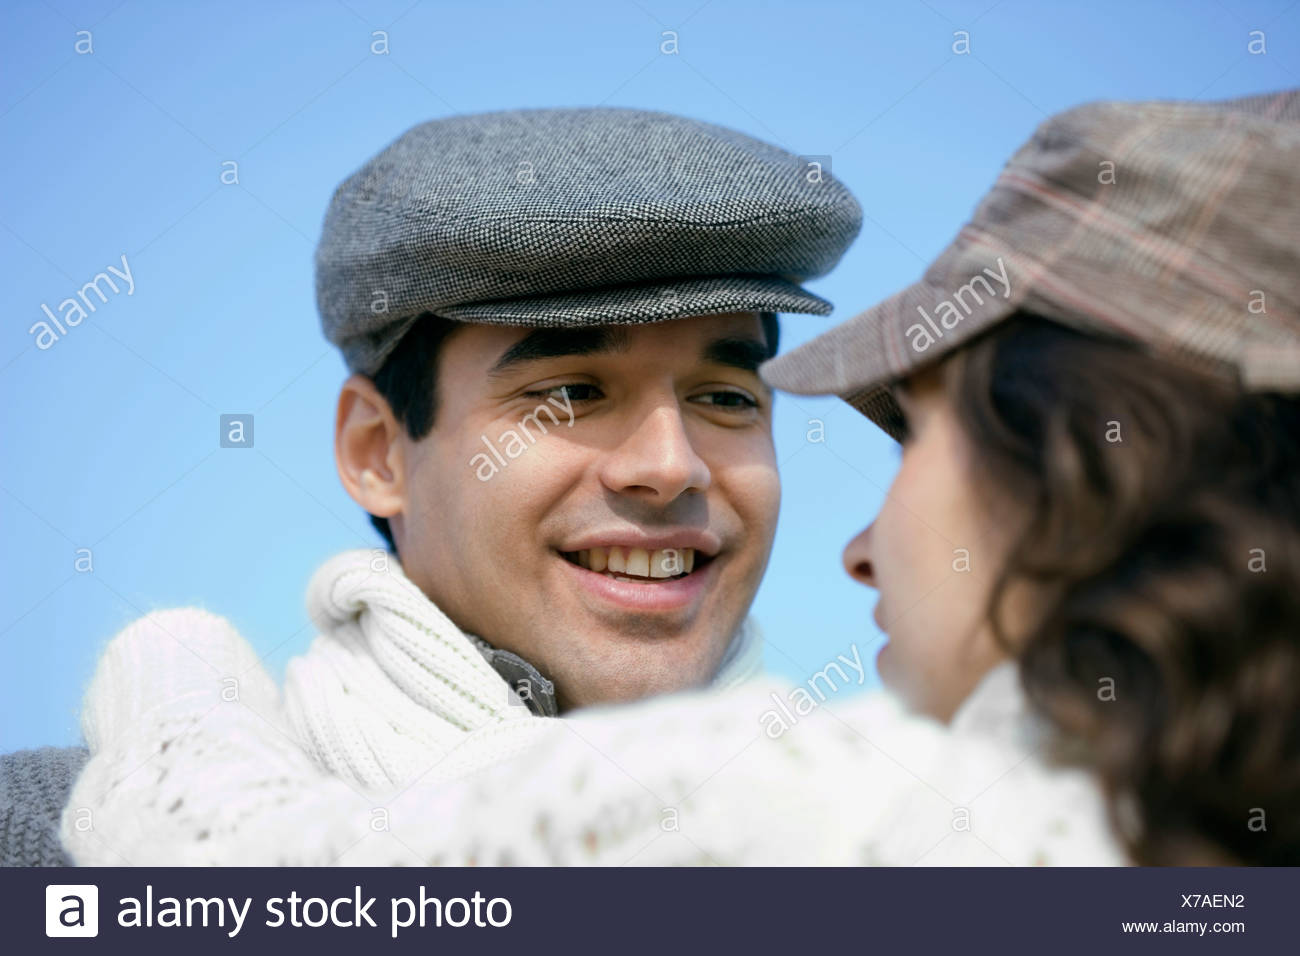 488ea0f8cd14a portrait of young man with flat cap looking at woman Stock Photo ...